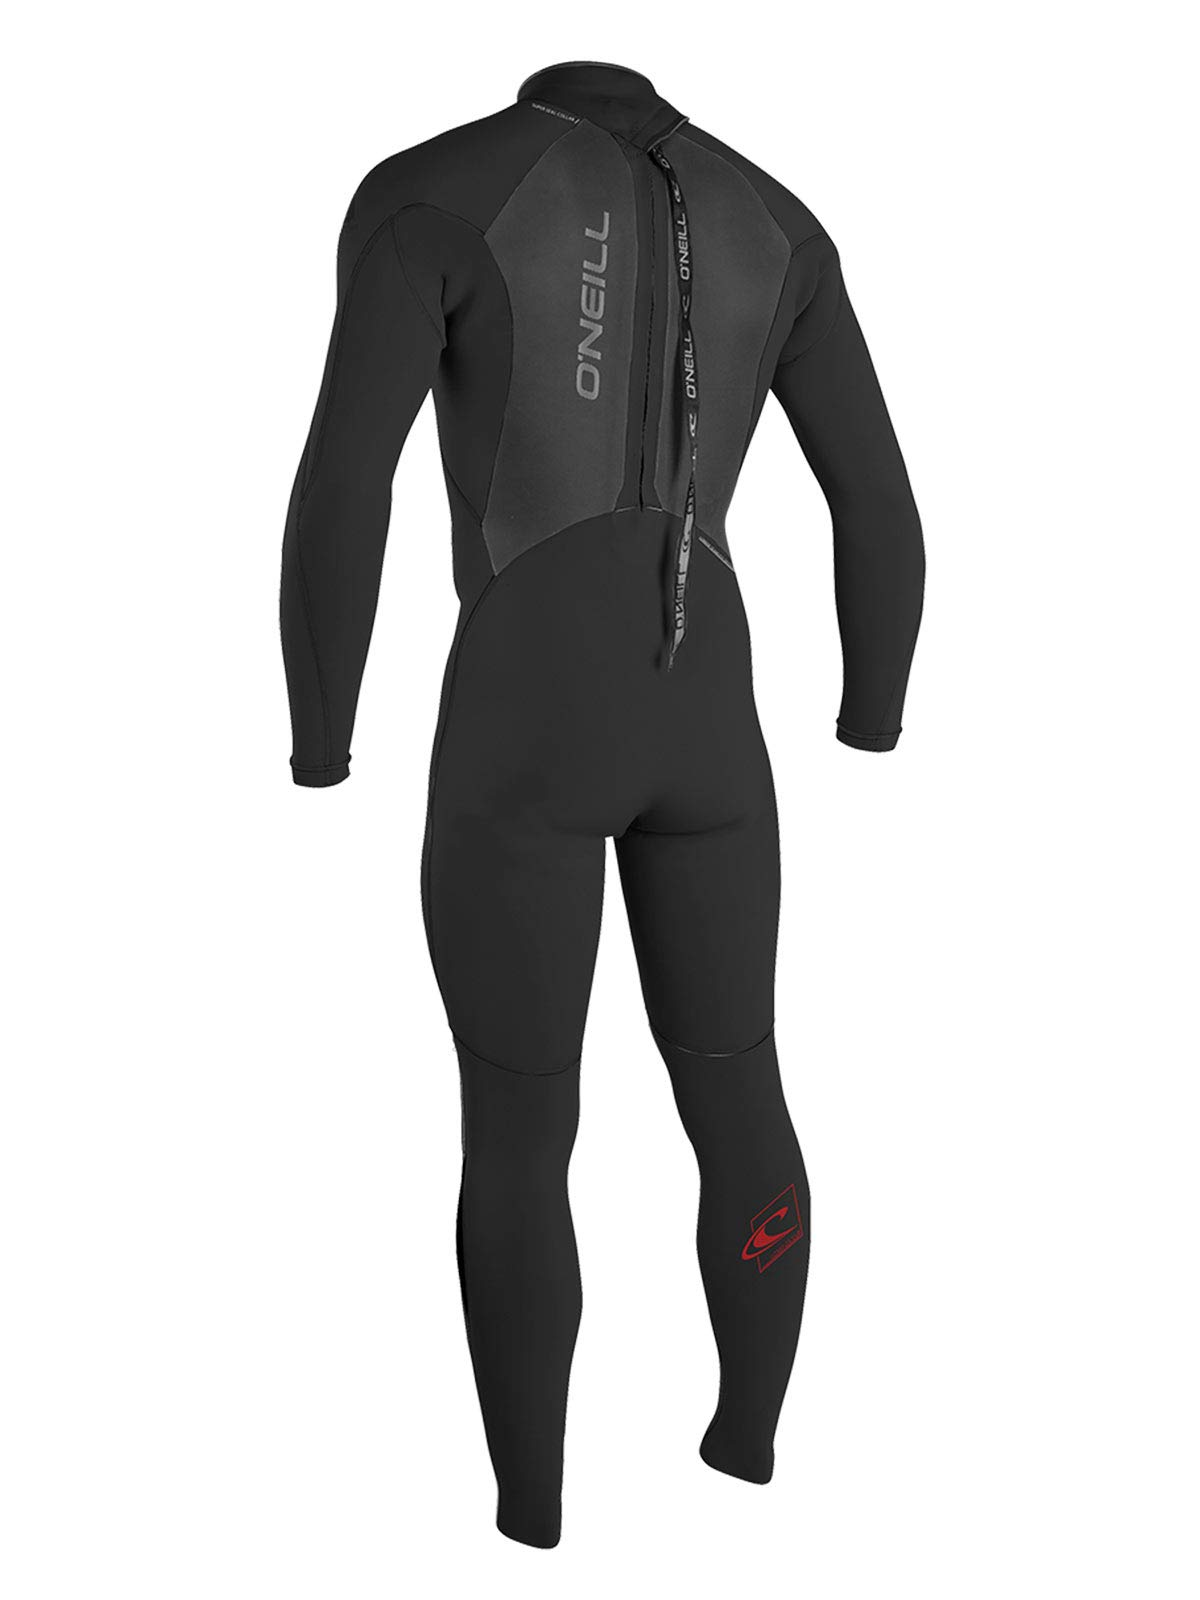 O'Neill Men's Epic 4/3mm Full Wetsuit 4XLT Black/Black/red (4212IS) by O'Neill Wetsuits (Image #3)